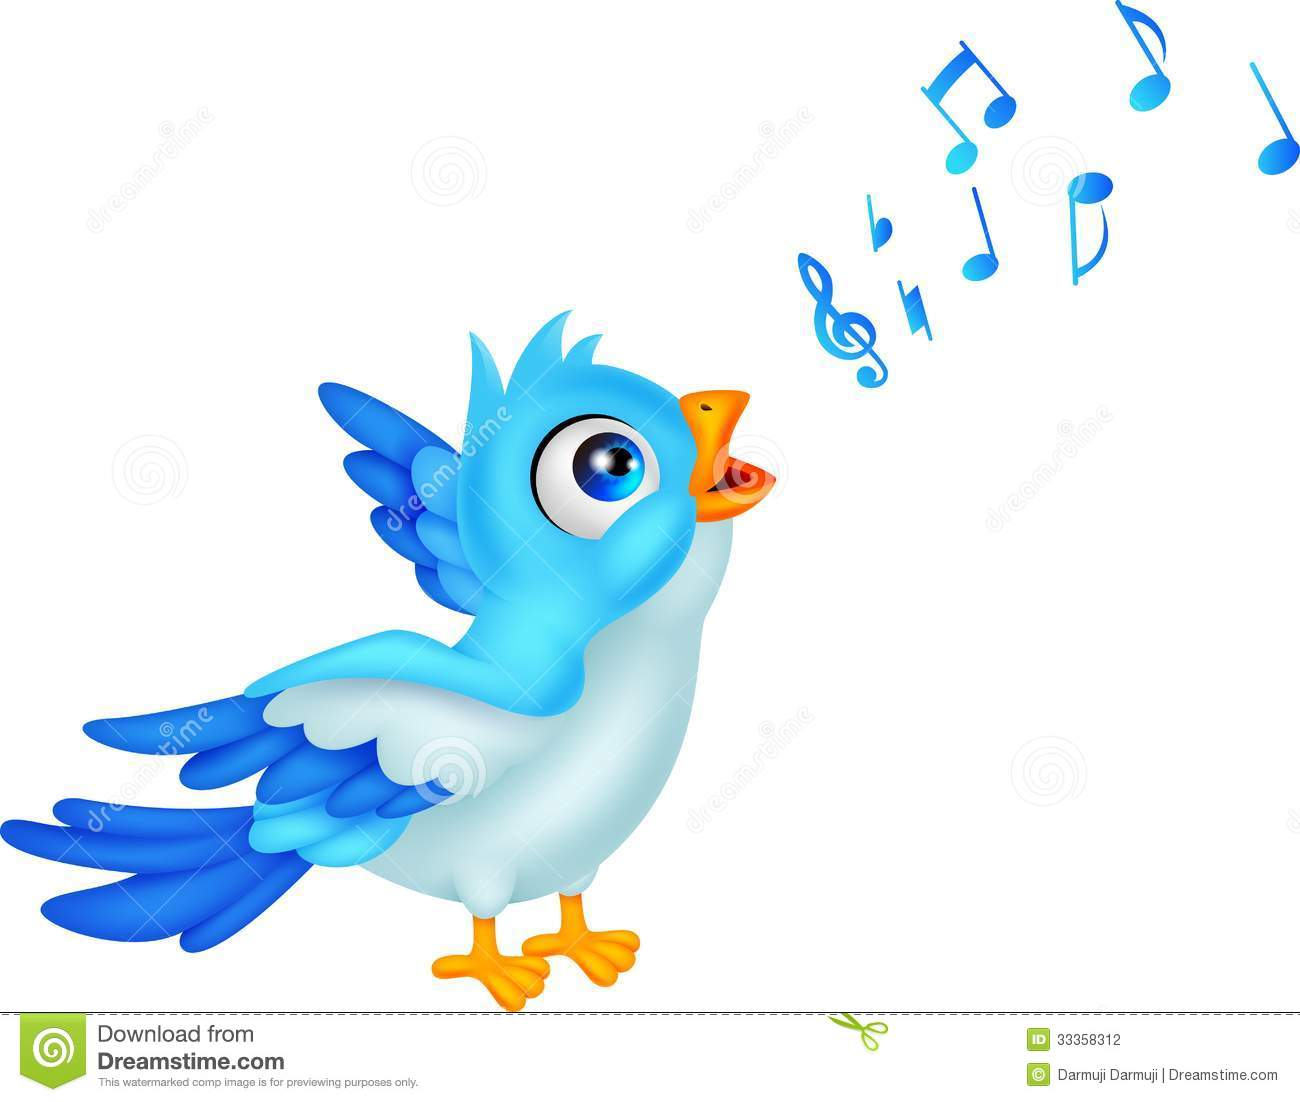 https://thumbs.dreamstime.com/z/cartoon-blue-bird-sing-illustration-33358312.jpg